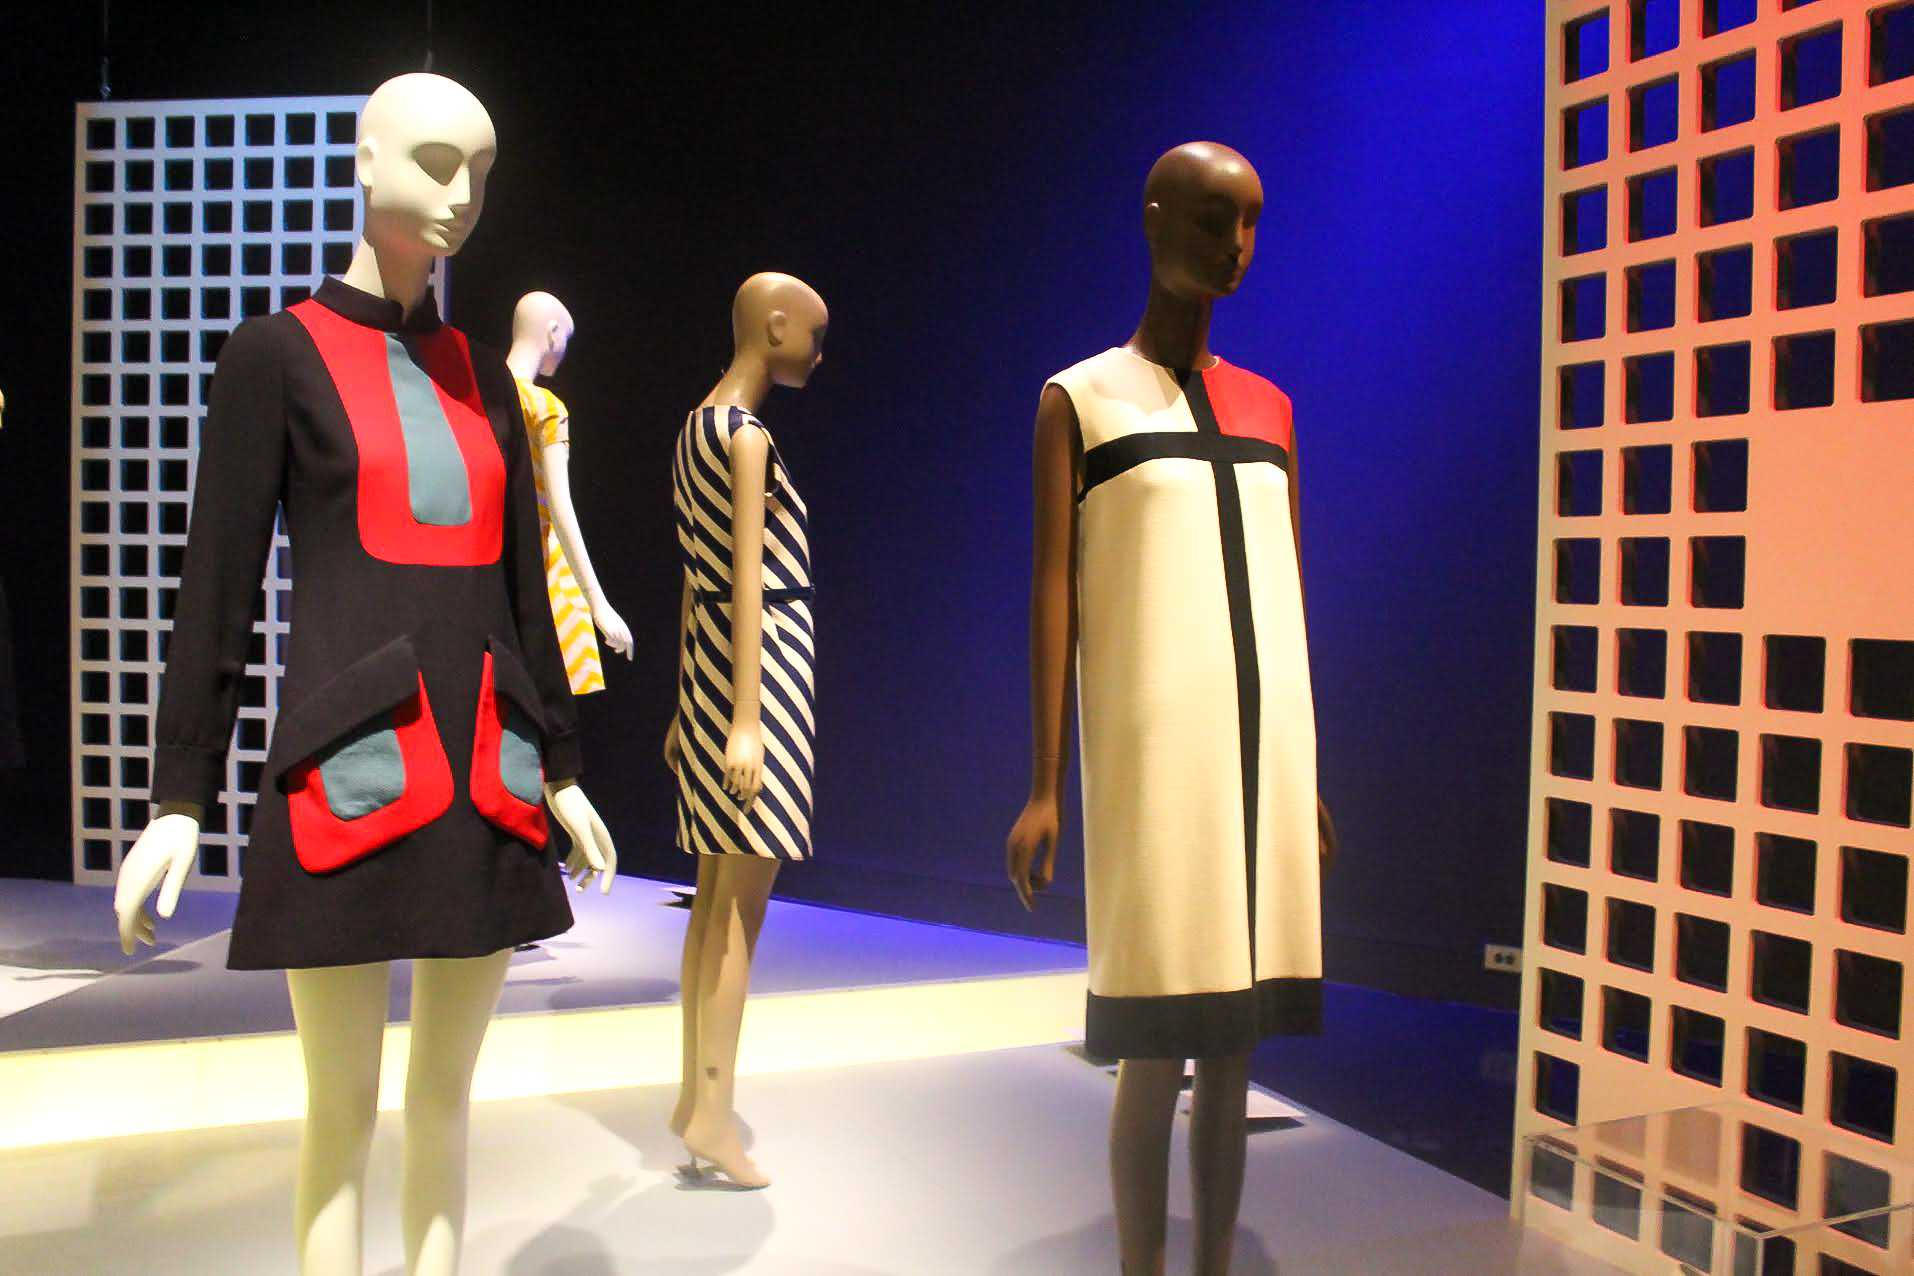 "Dresses from the Fashion Institute of Technology's exhibit ""Paris Refashioned (1957 - 1968)."" These garments pushed the boundaries of acceptable dress for women in the 1960s feminist movement."